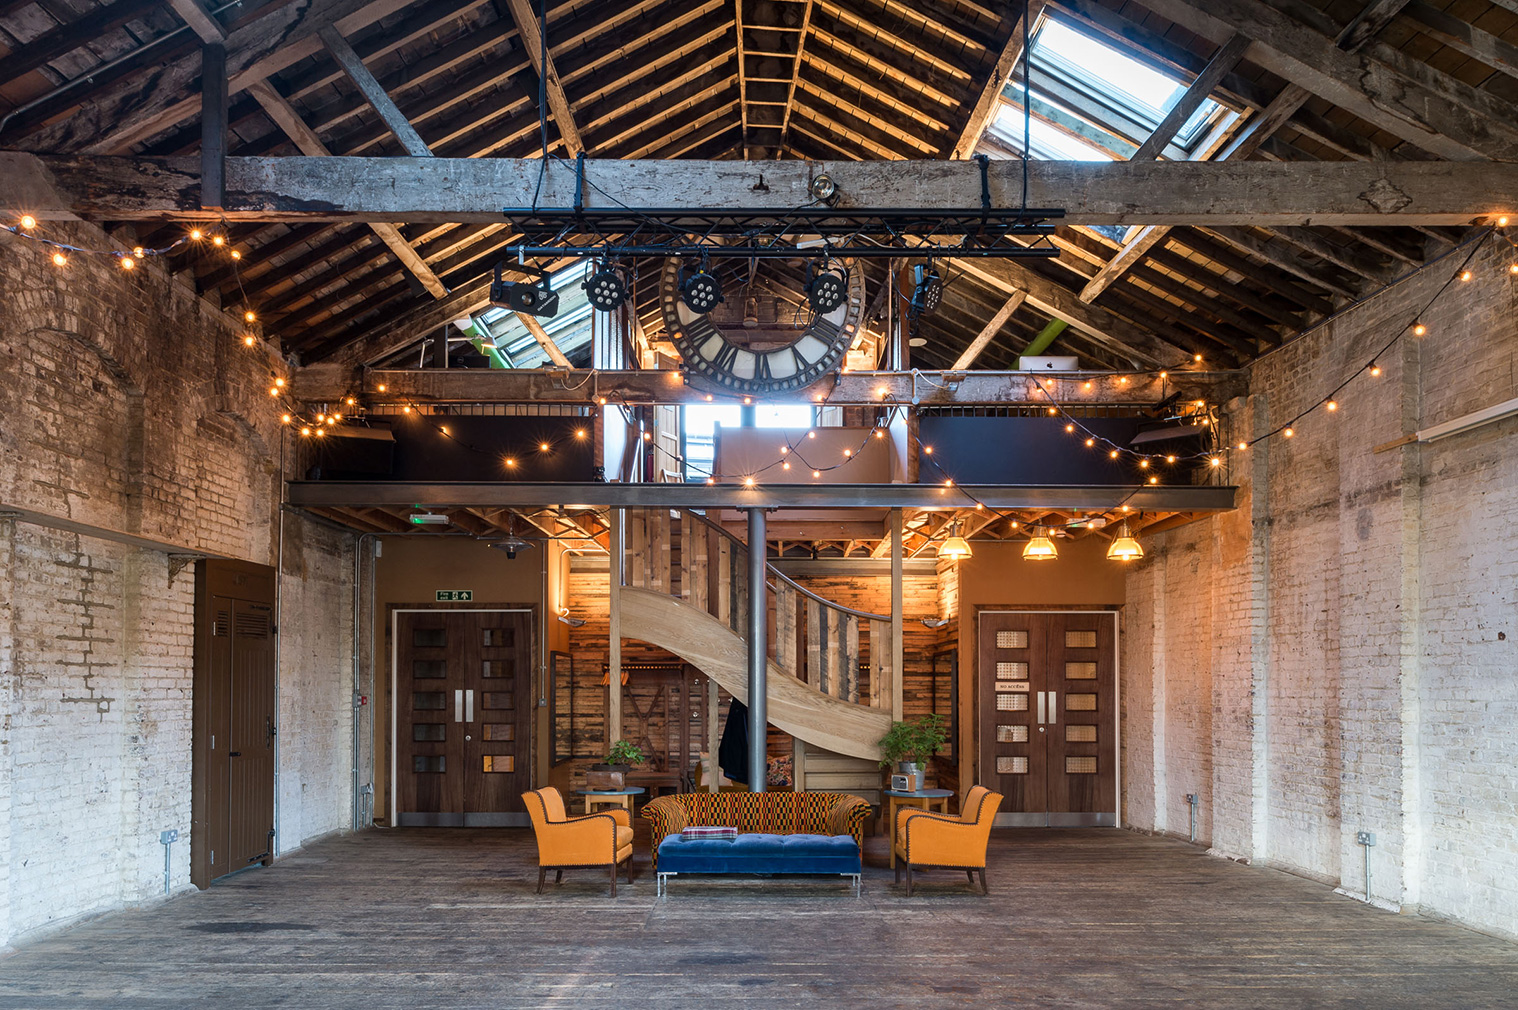 Property Of The Week A Converted Warehouse In Brixton With An Events Space